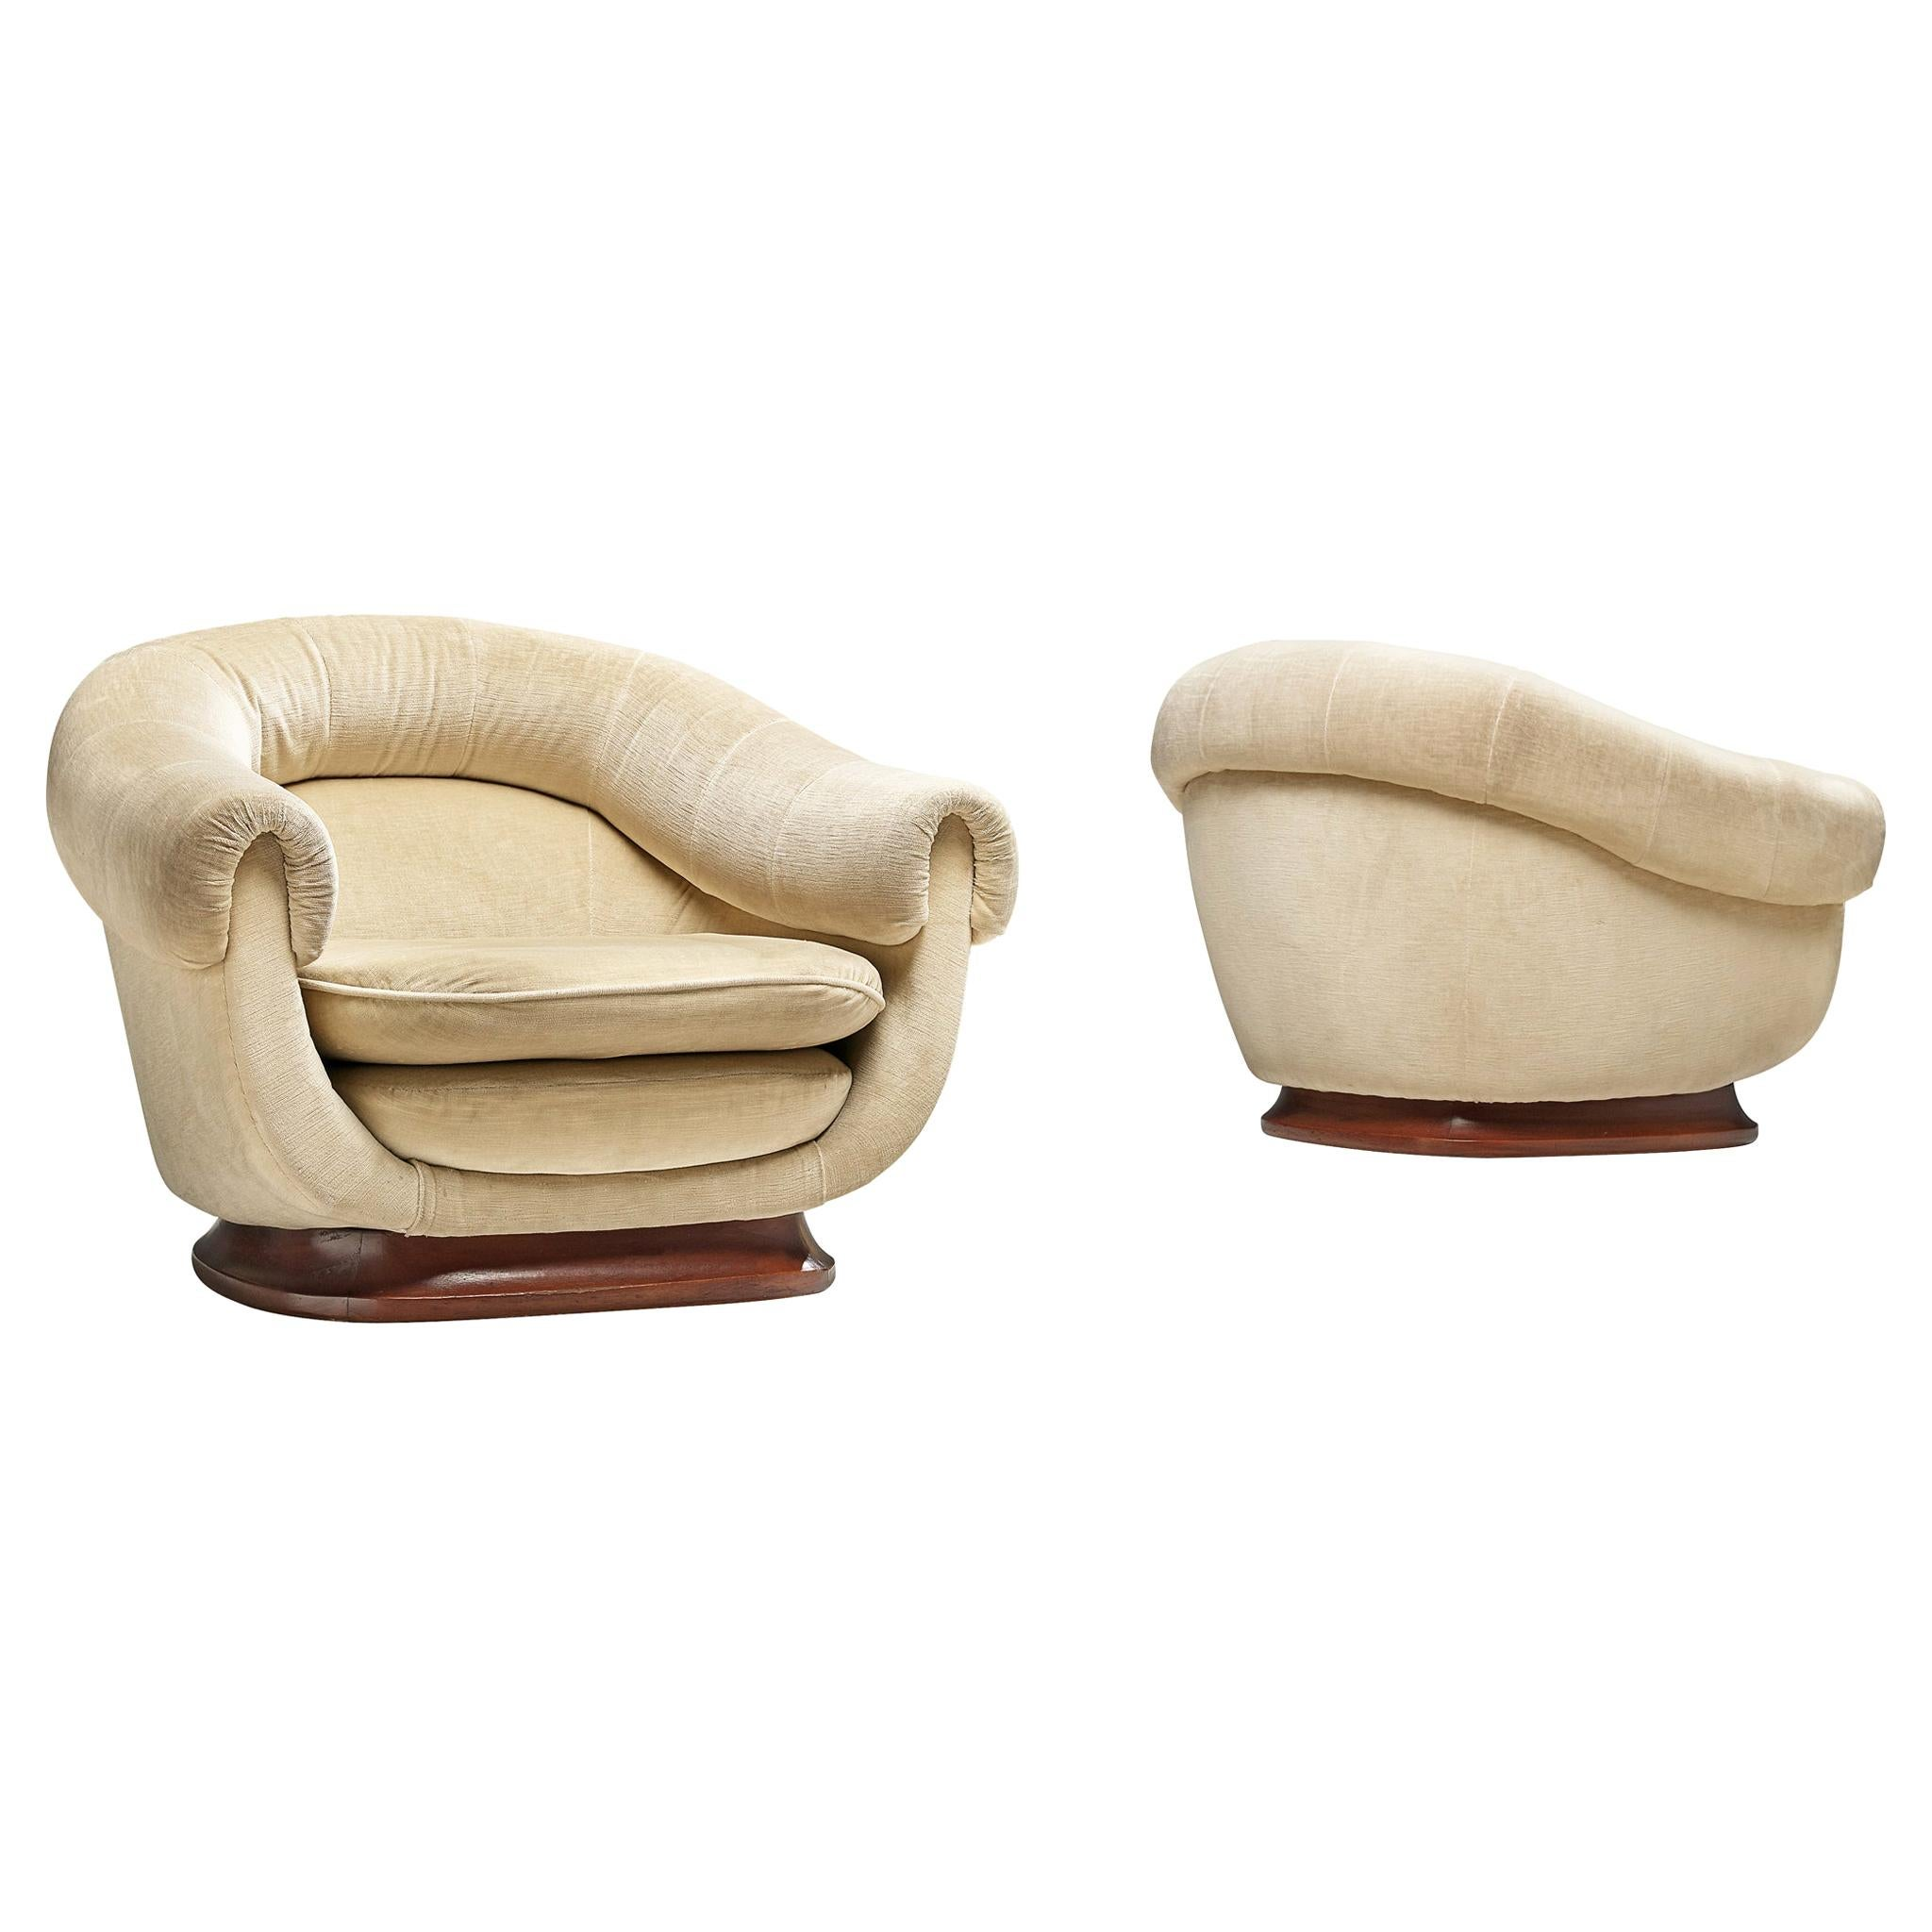 Italian Curved Lounge Chair in Light Beige Velours